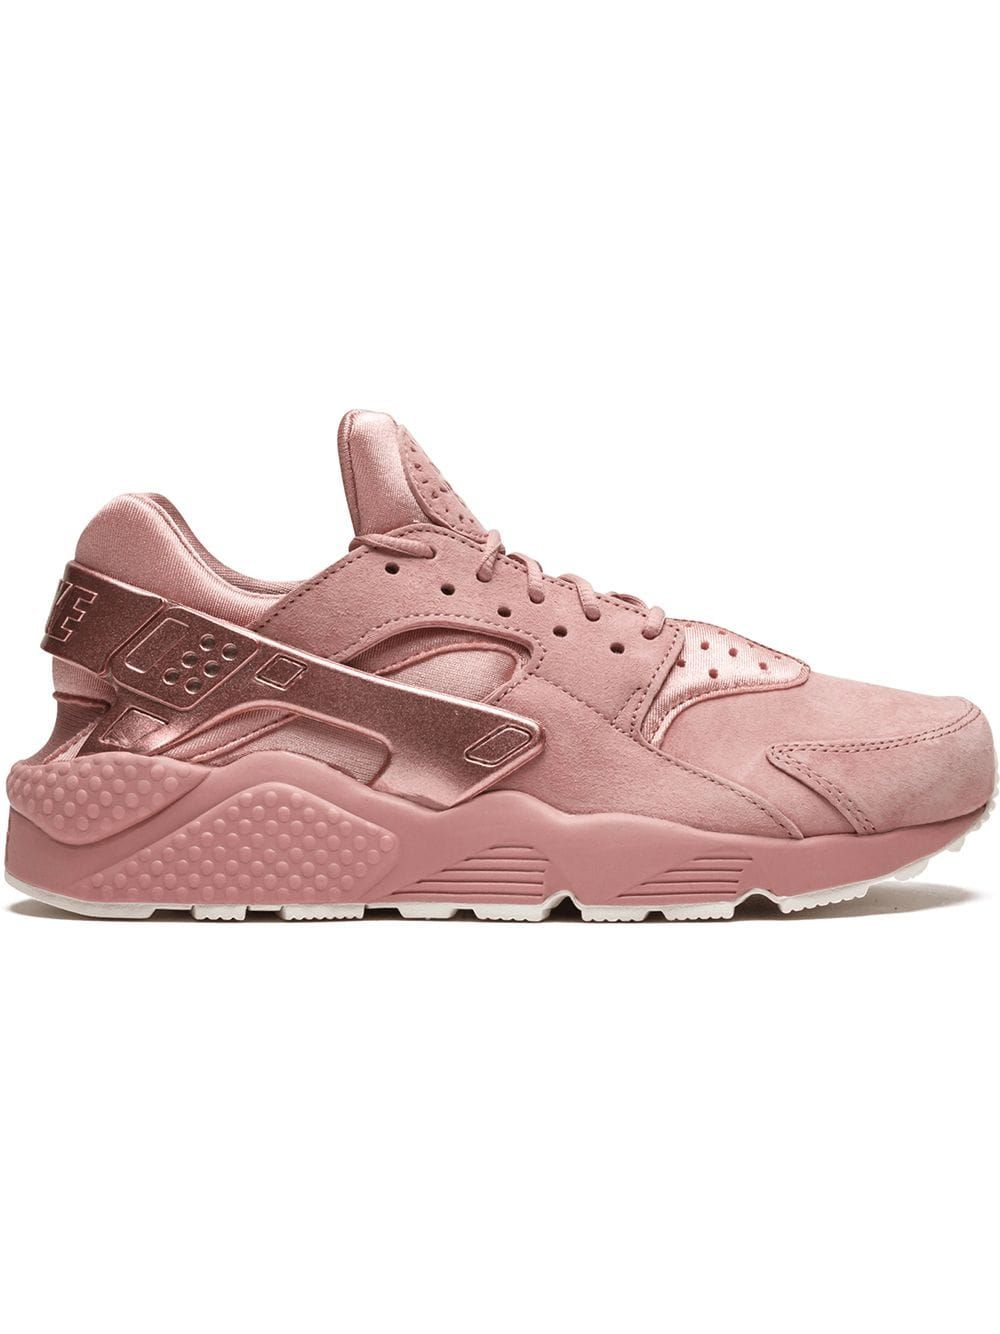 apenas Acerca de la configuración Betsy Trotwood  Nike Air Huarache Run Sneakers - Farfetch in 2020 | Pink nike shoes, Nike  huarache women, Nike air shoes